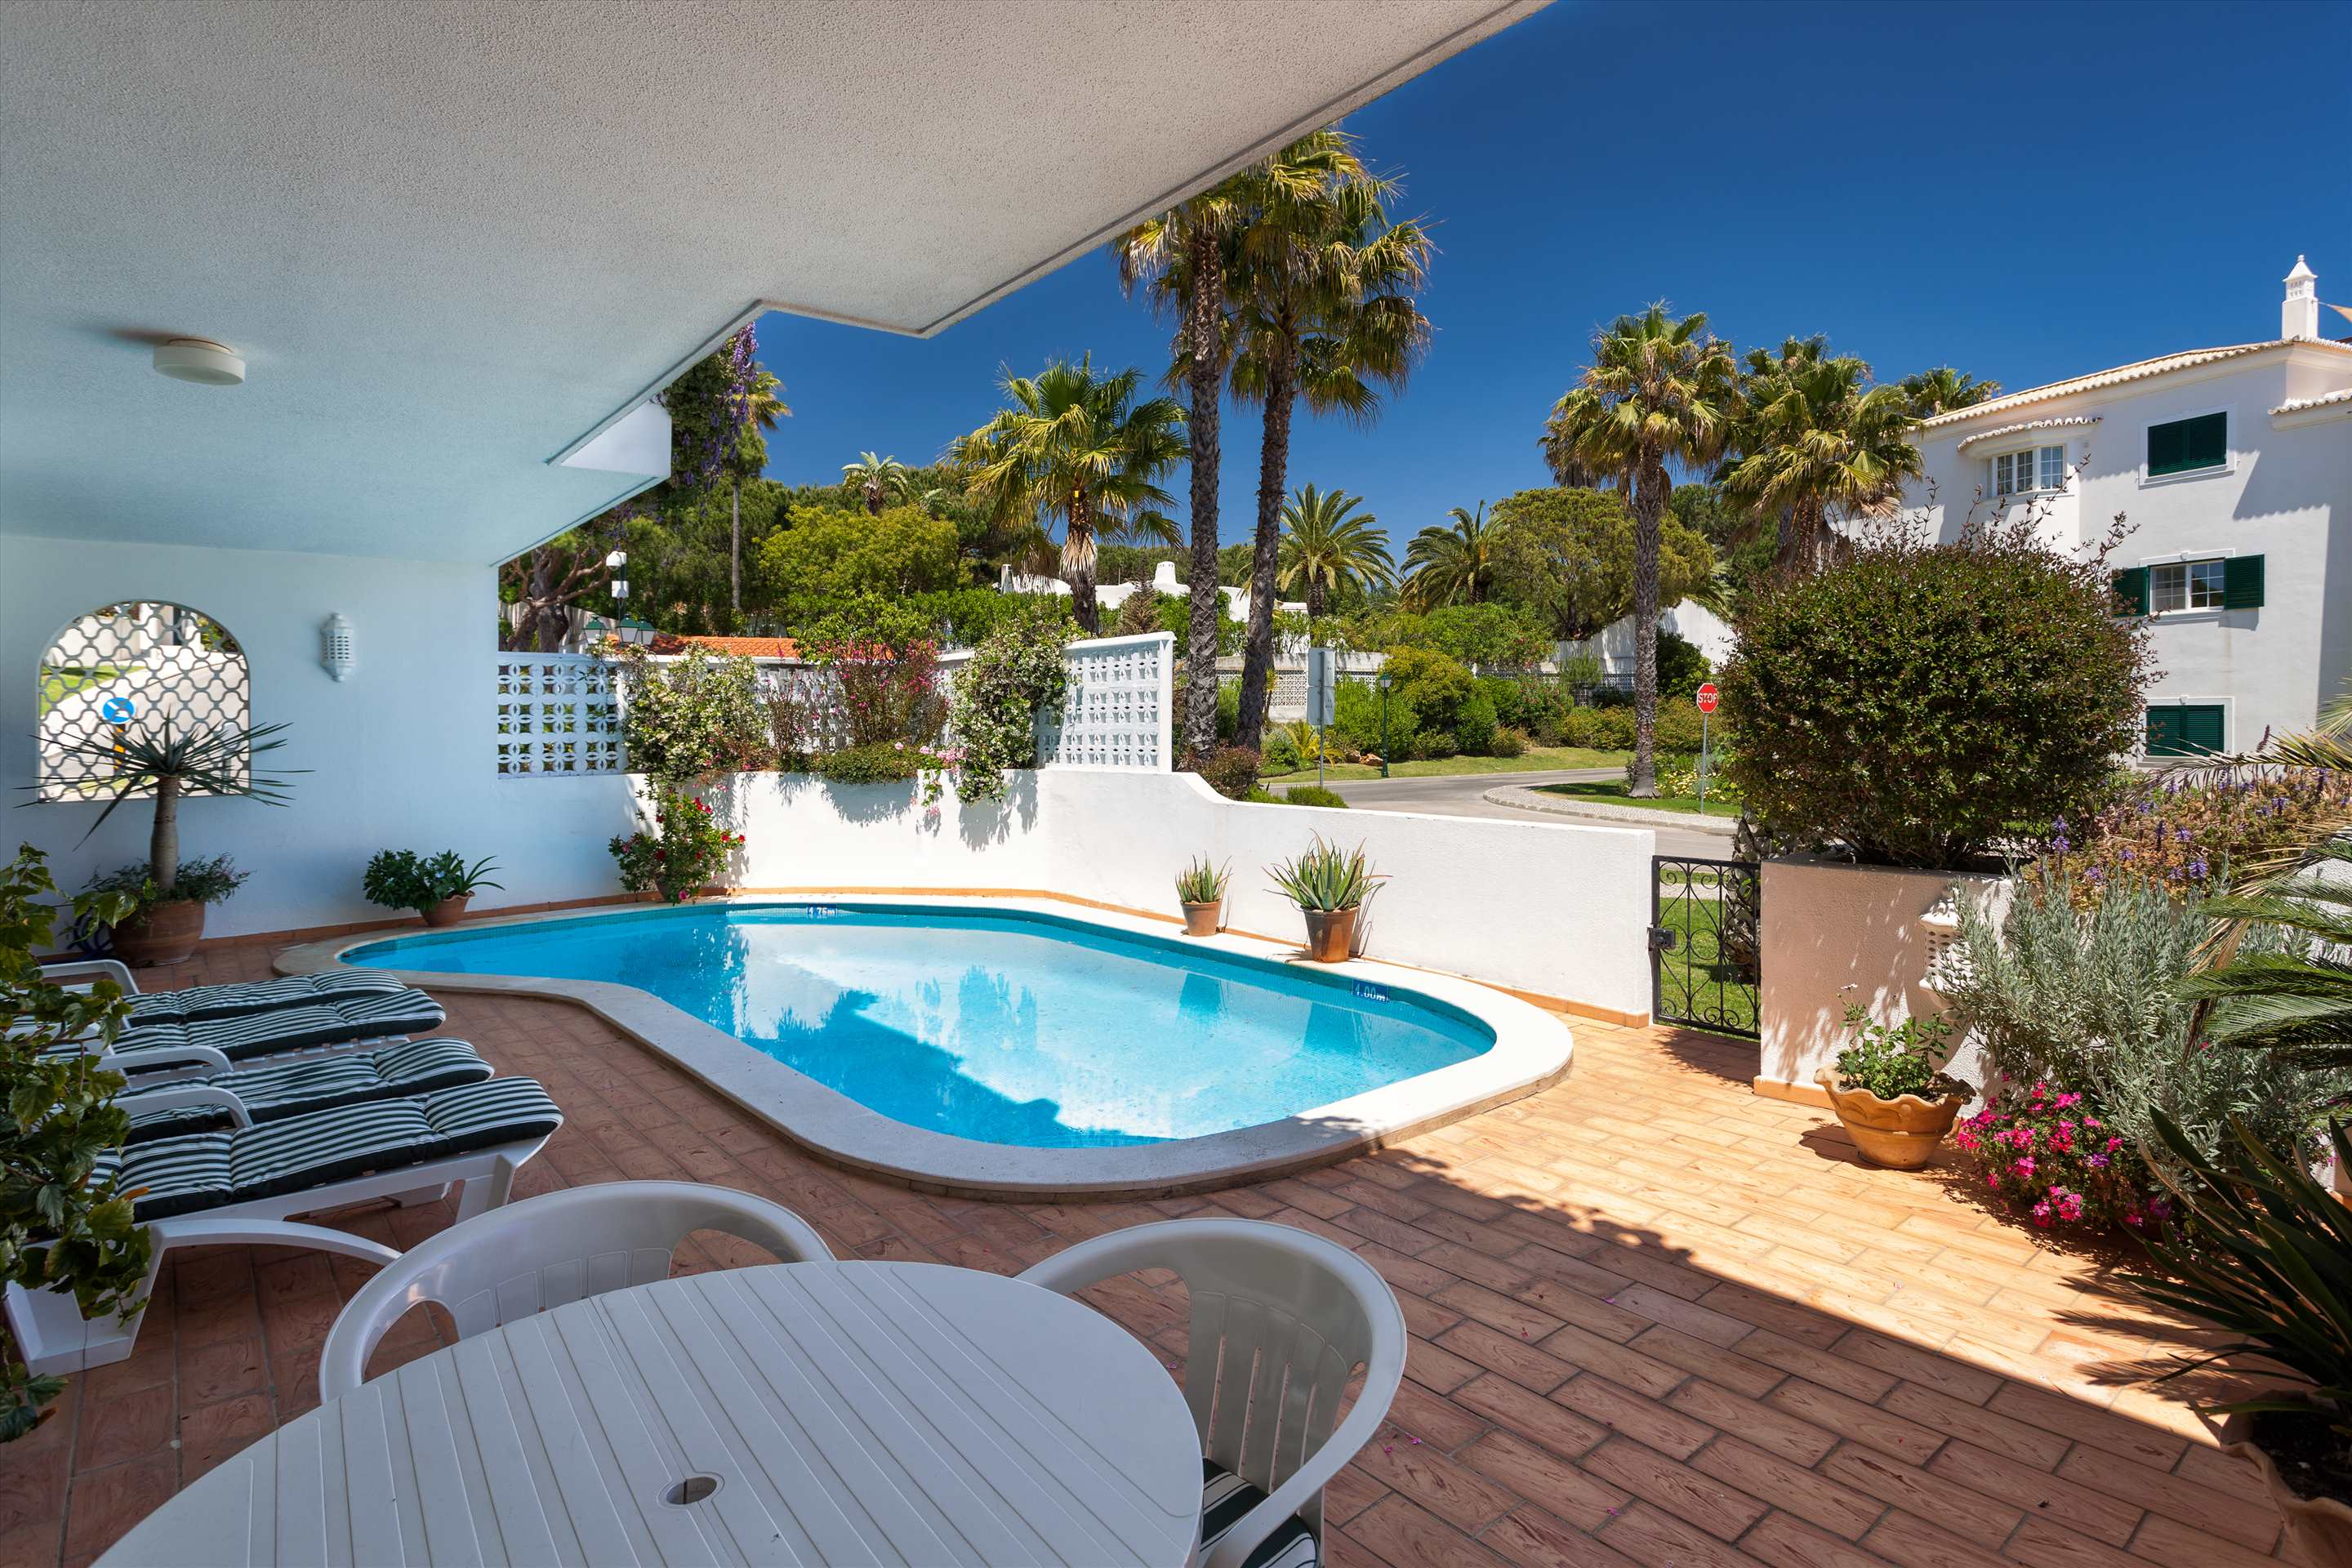 Apt. Carmel, 2 bedroom apartment in Vale do Lobo, Algarve